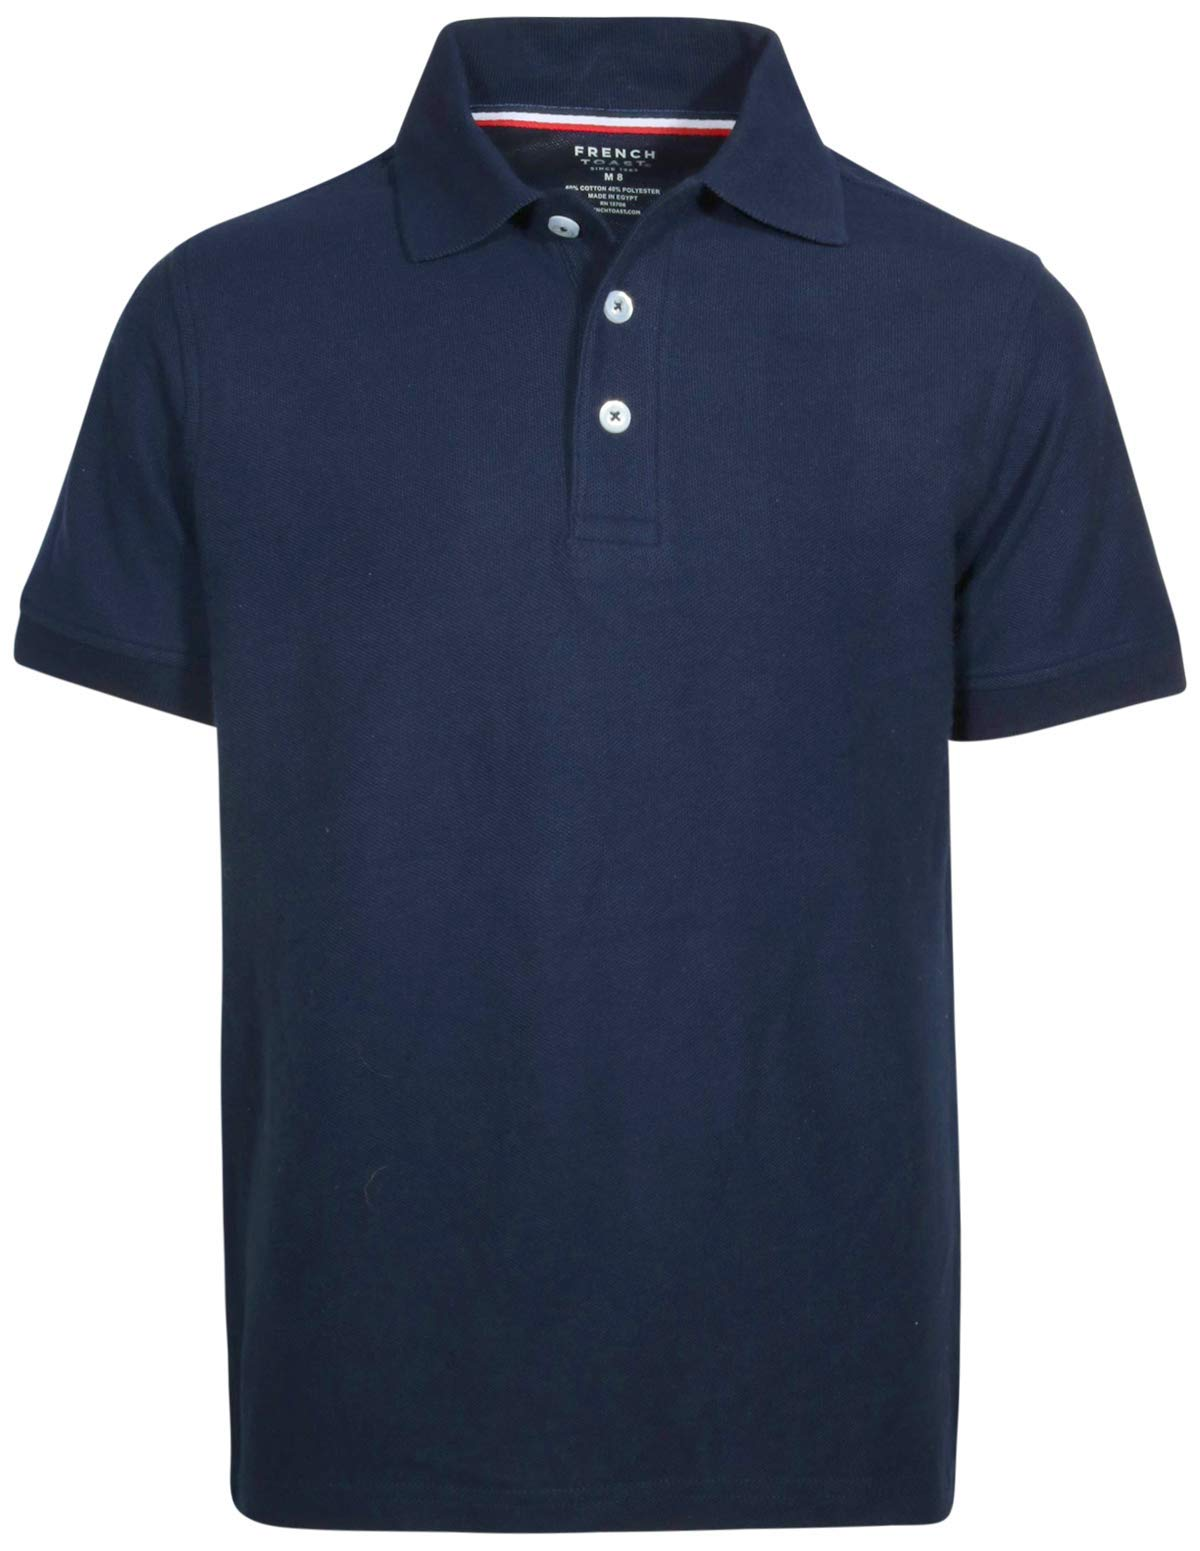 French Toast Boys Short Sleeve Uniform Polo Shirt - 4 Pack, Navy, Size Large' by French Toast (Image #2)